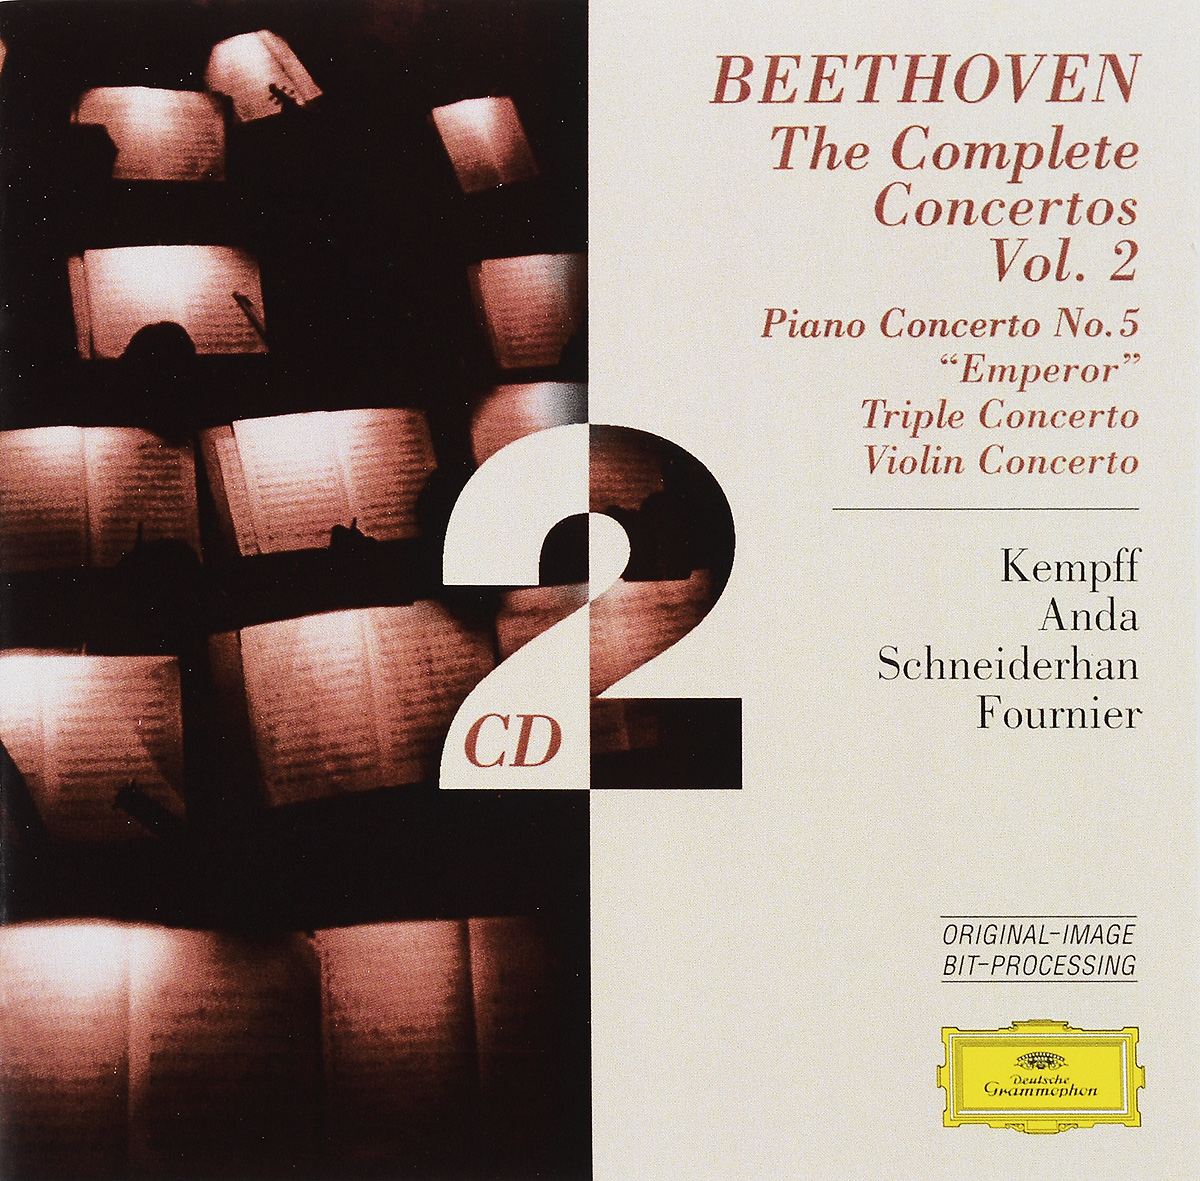 Beethoven. The Complete Concertos. Volume 2 beethoven the complete concertos volume 2